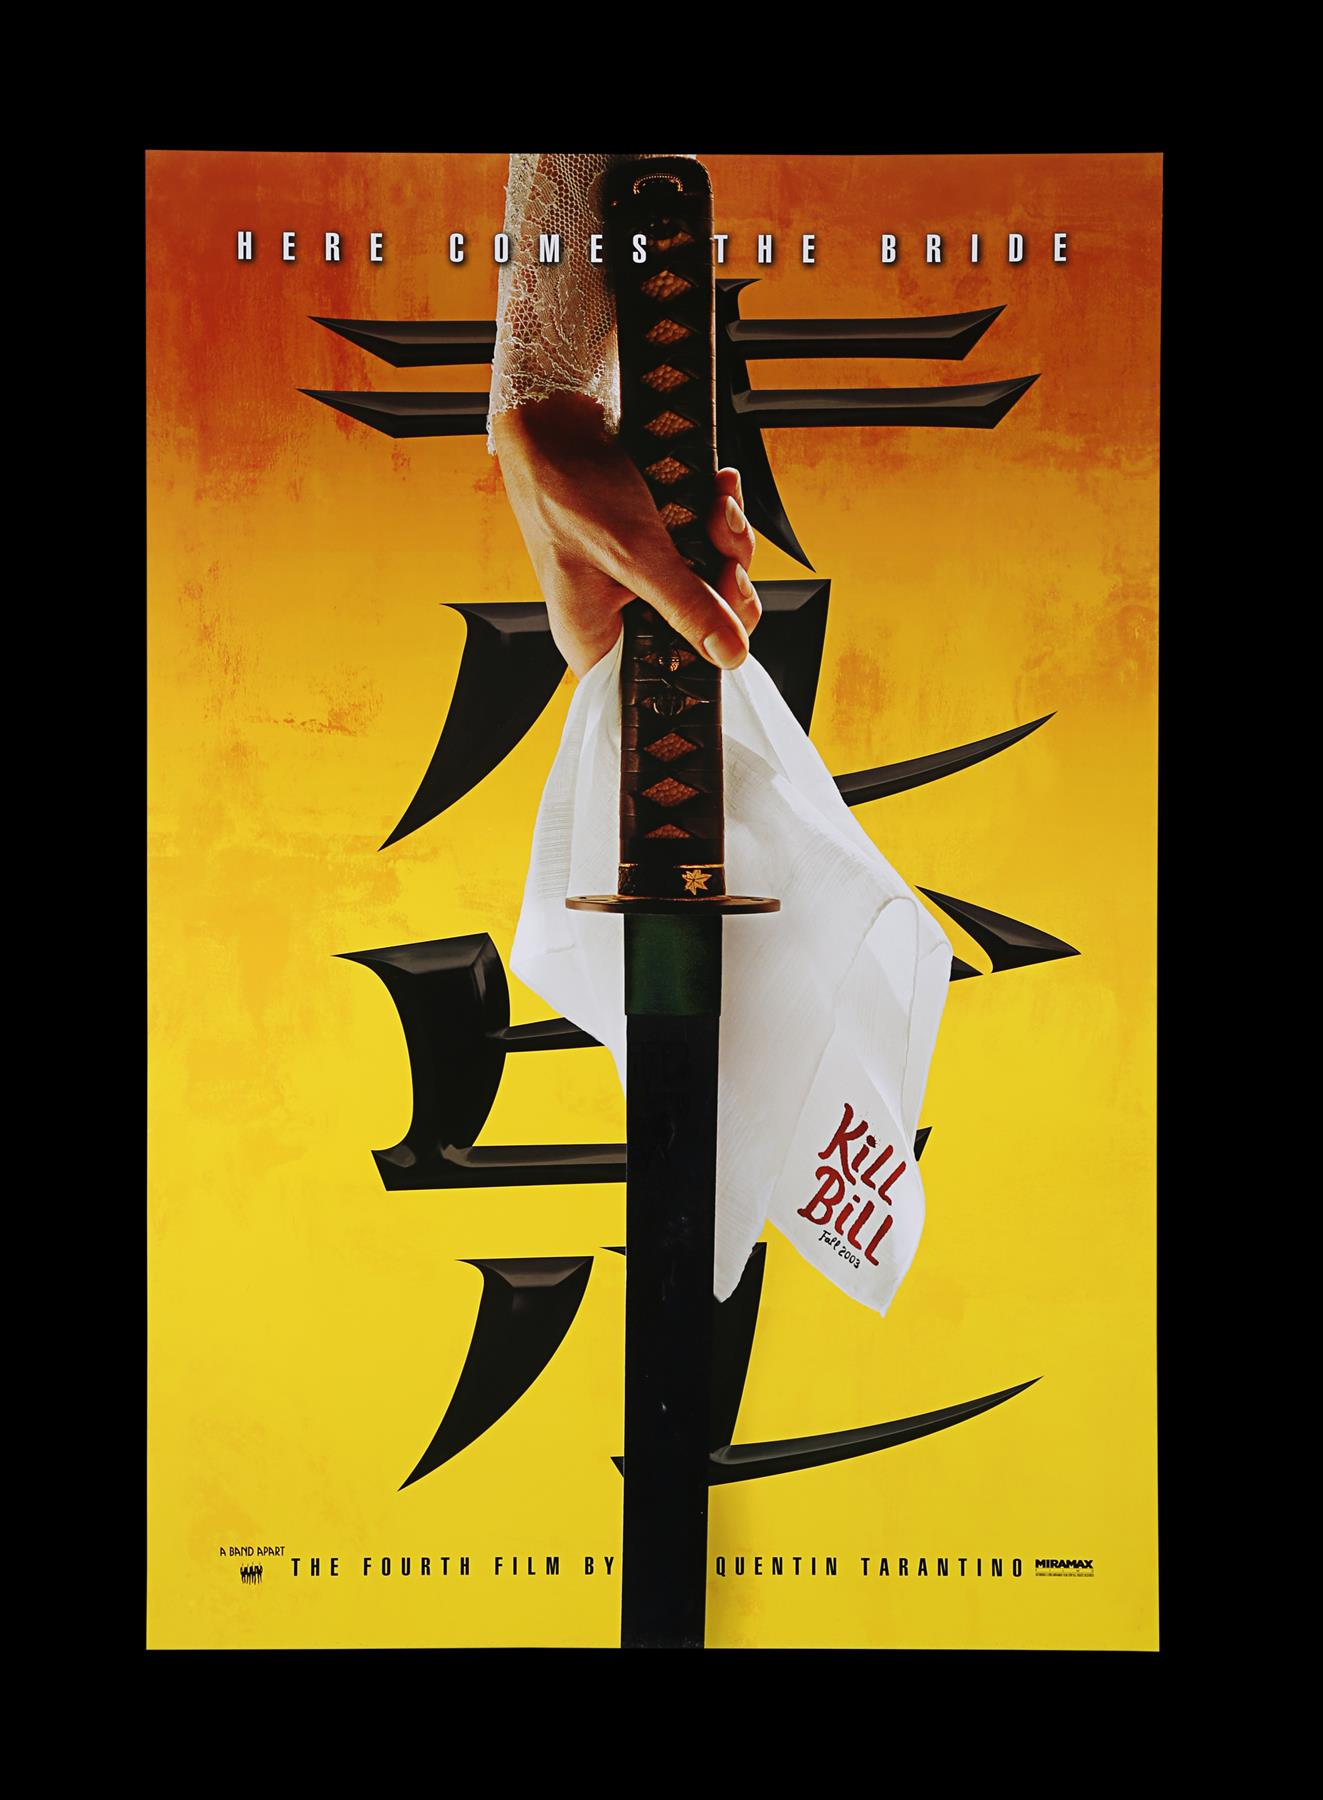 KILL BILL (2003) - US One-Sheet and Thai One-Sheet, 2003 - Image 7 of 10